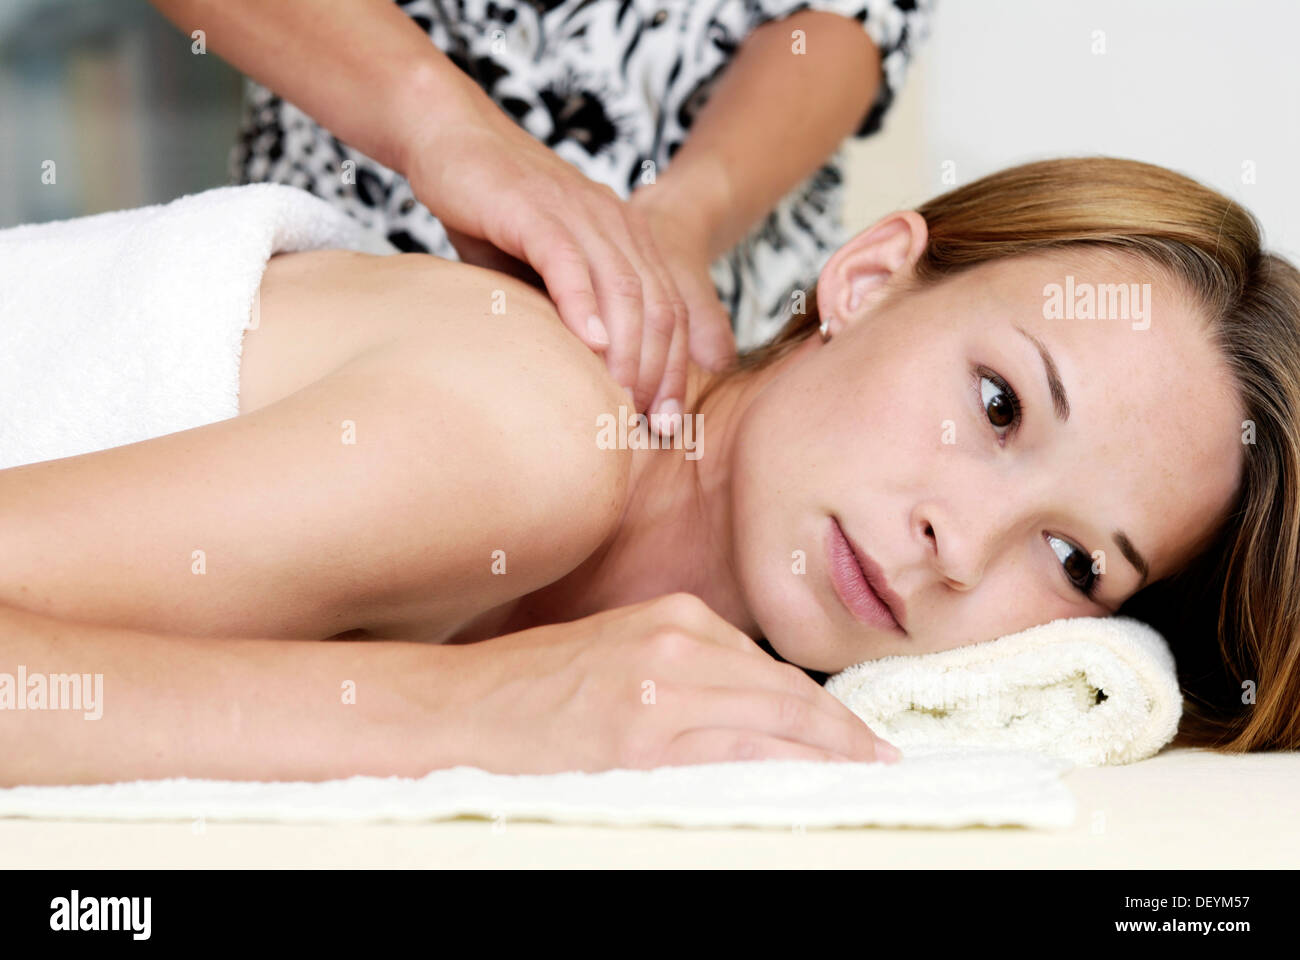 Young woman receiving massage therapy - Stock Image